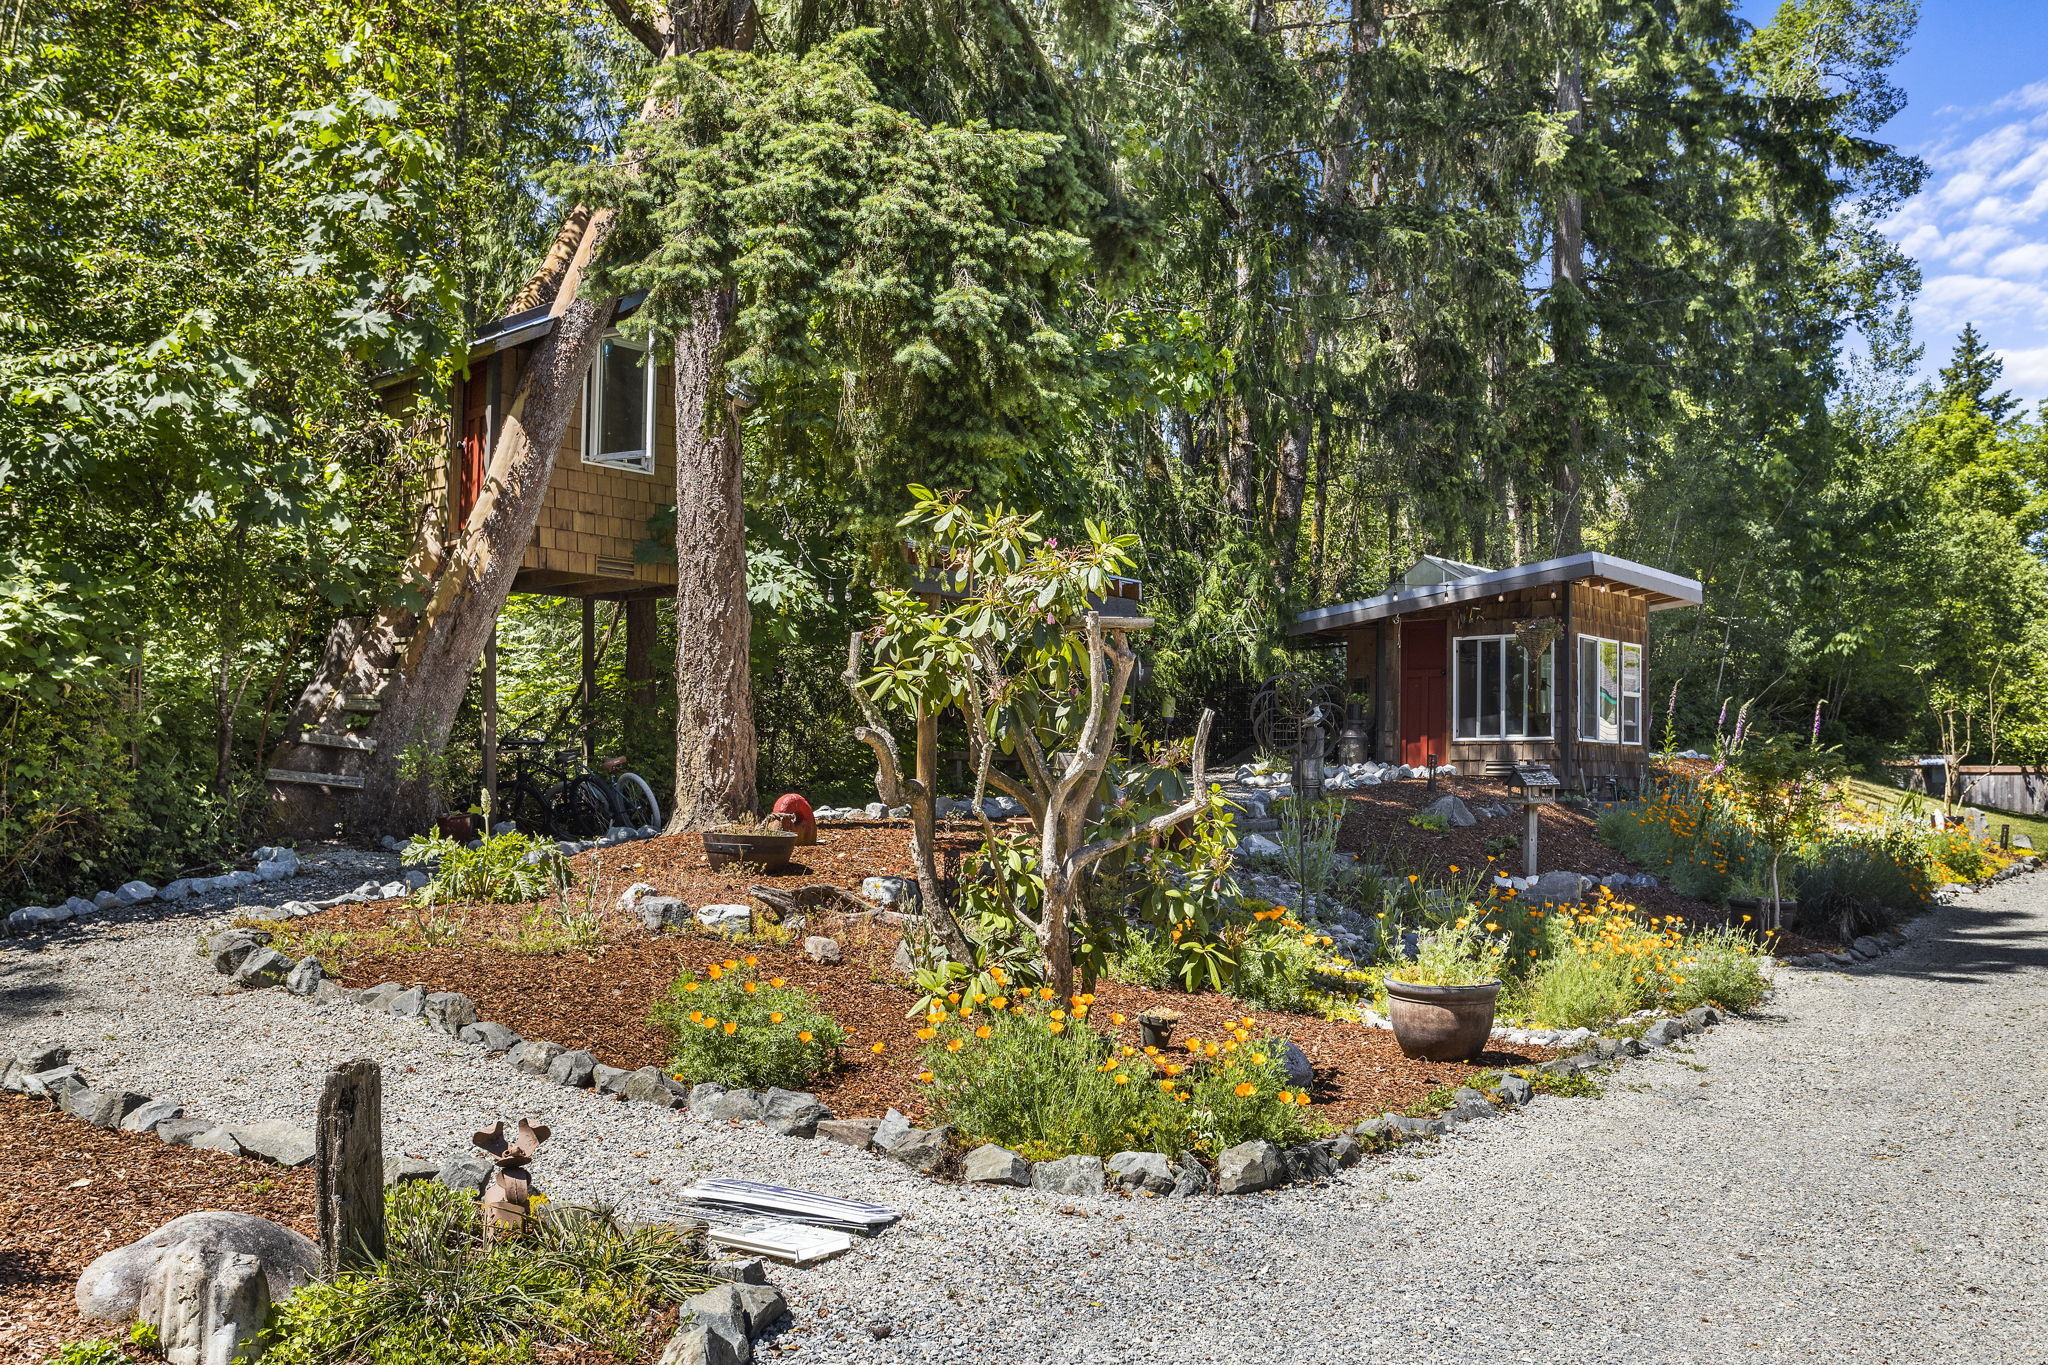 Beautiful gardens and trees throughout the property!